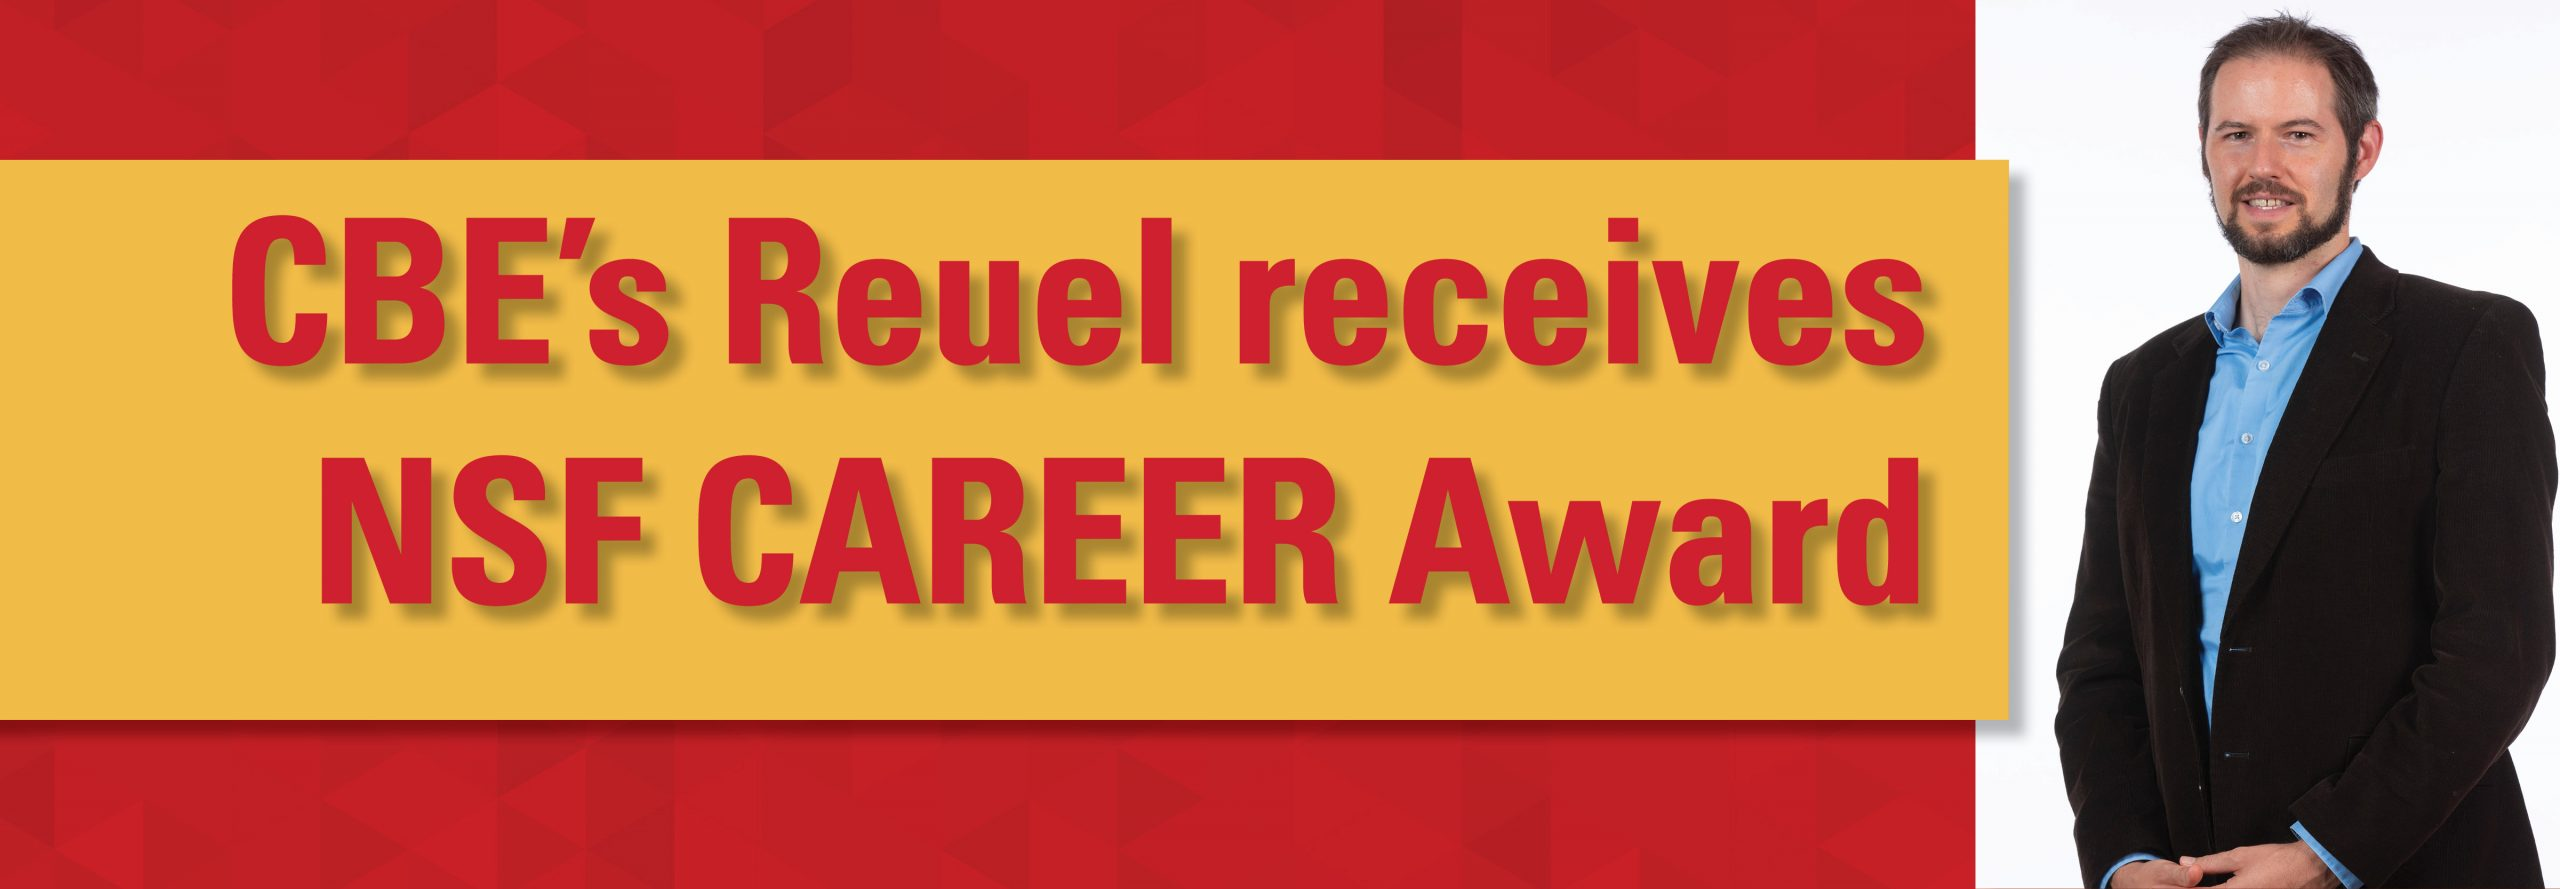 CBE's Reuel receives NSF CAREER Award - graphic and photo of Reuel